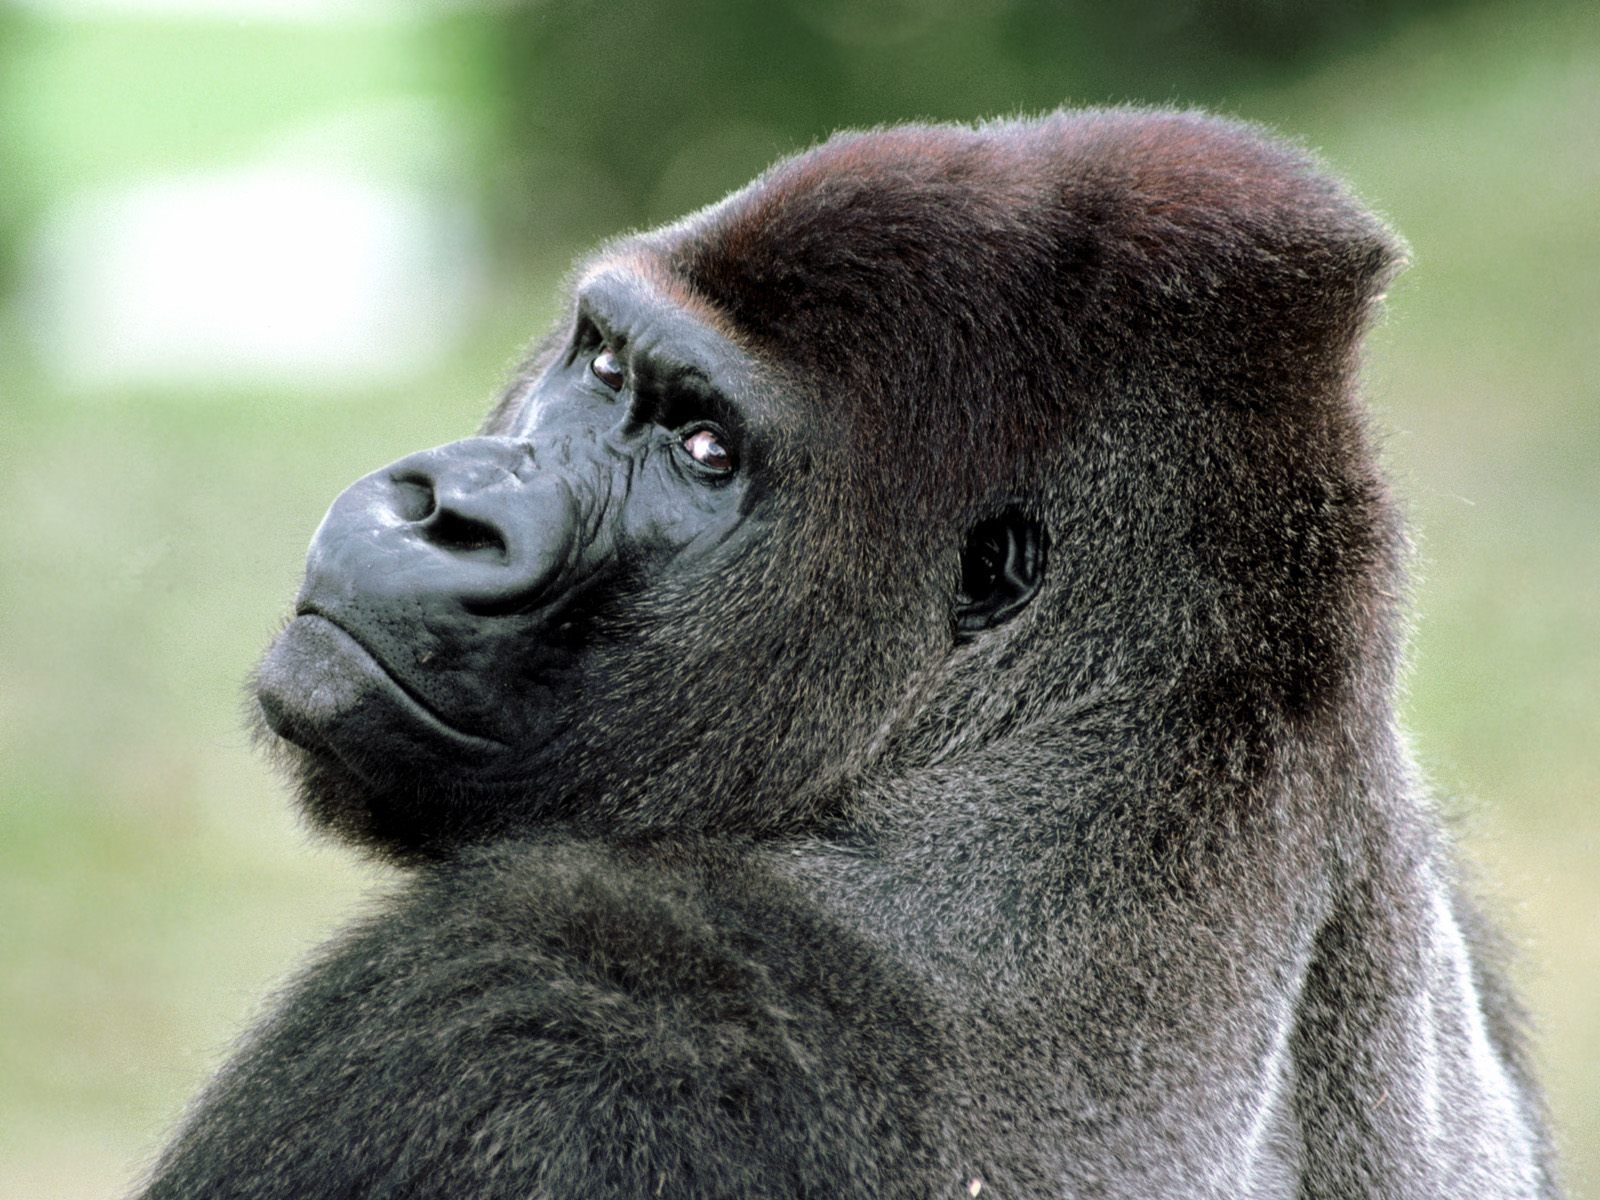 Very Sweet and Cute Animals Funny Gorilla wallpaper for desktop 1600x1200